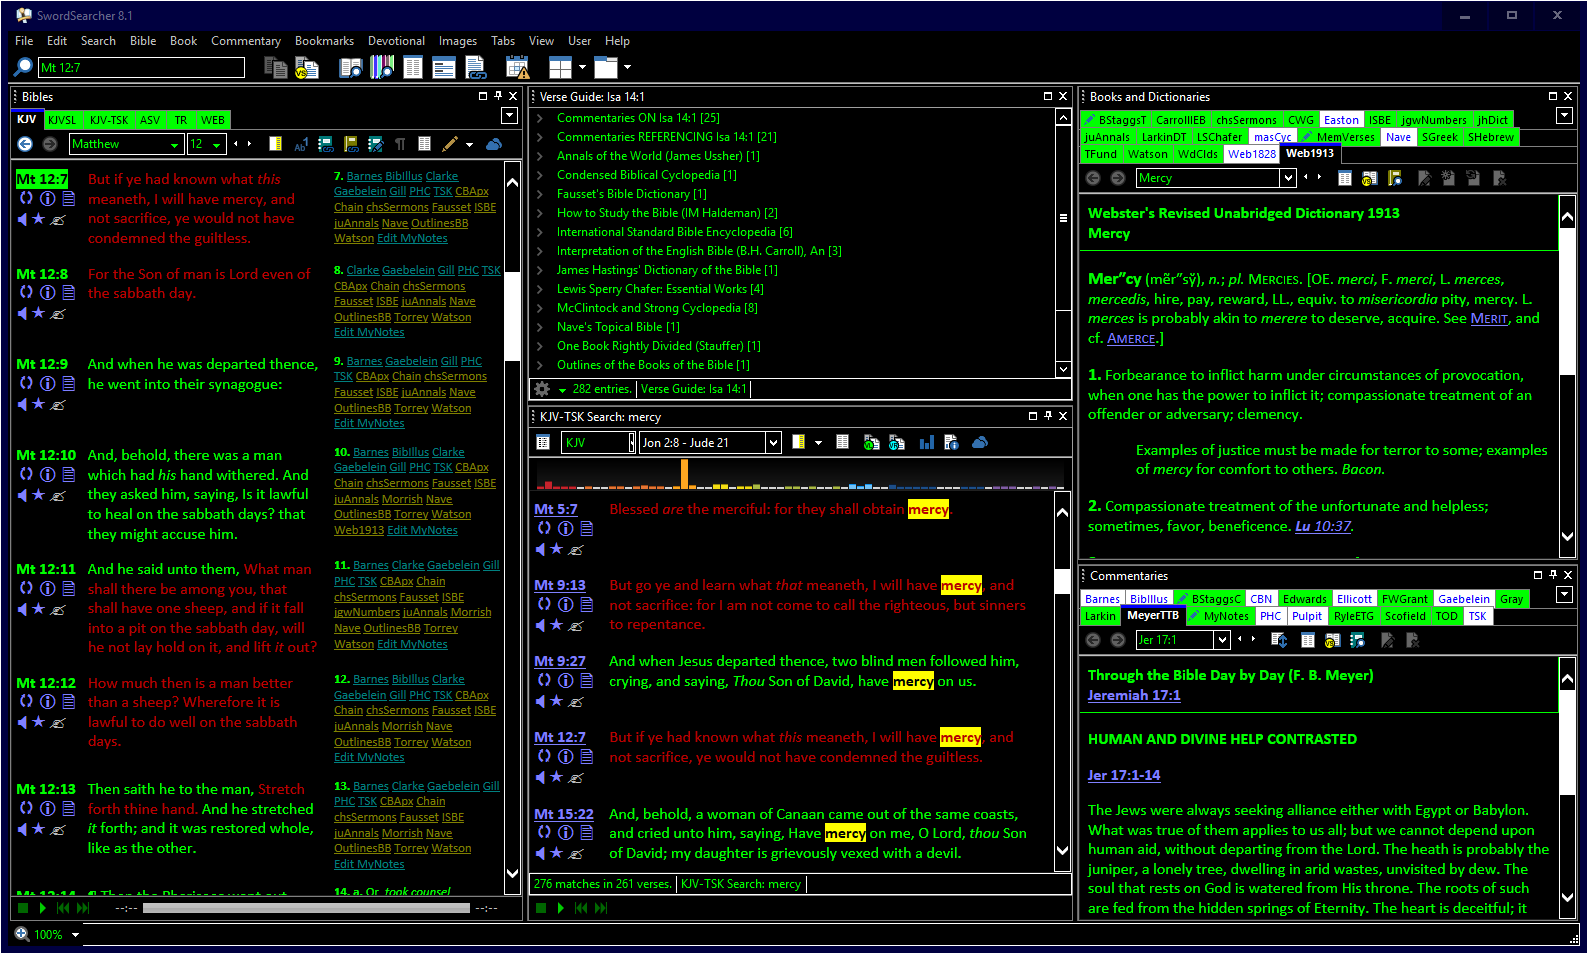 SwordSearcher 8.1 in high-contrast mode